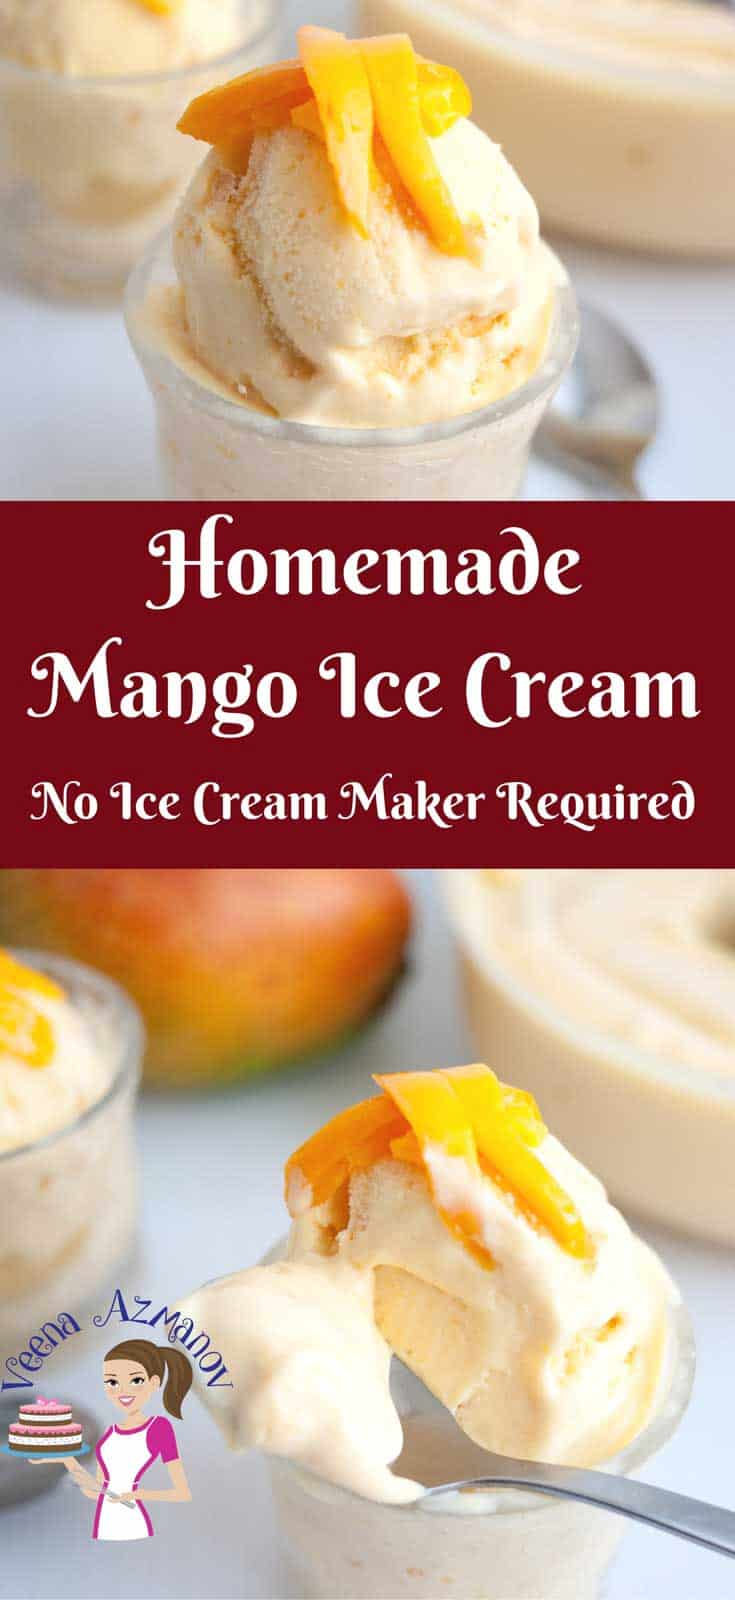 This exotic summer fruit has so much potential, like this creamy homemade mango ice cream. Made with rich French vanilla pastry cream as a base; lots of thick mango puree and whipped cream for that added creaminess.